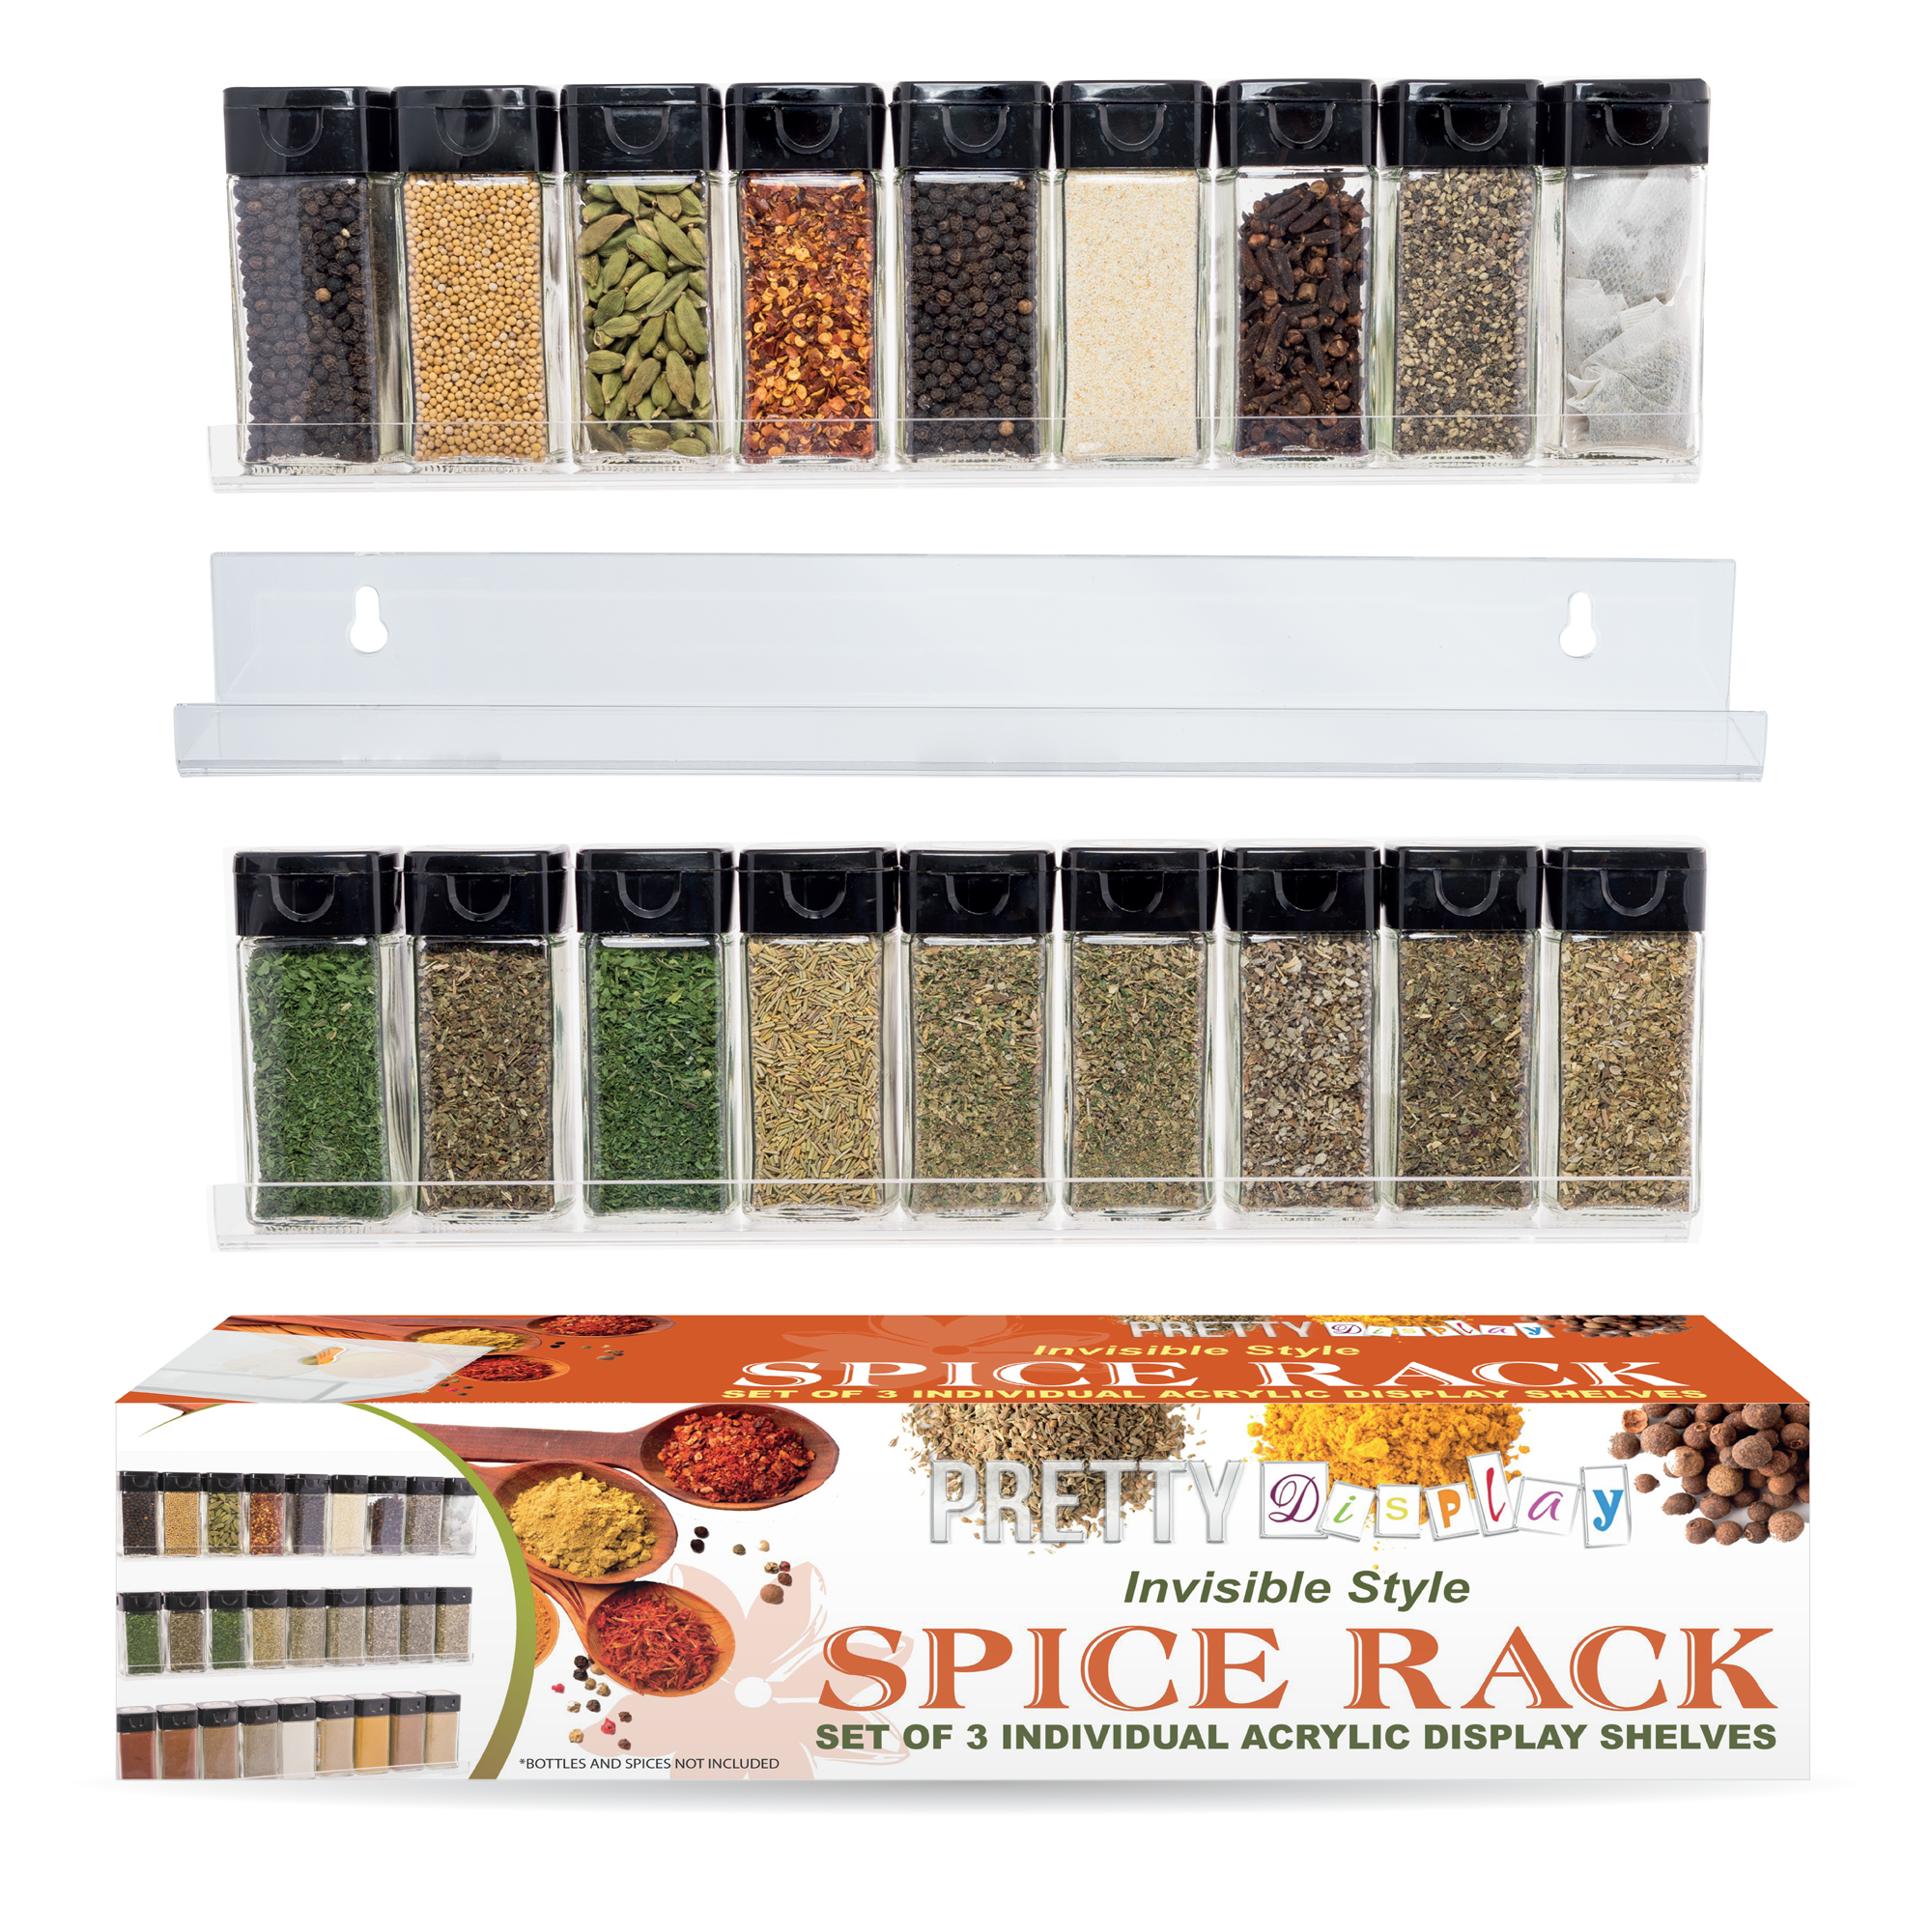 Spice Rack - 3 Shelf Acrylic Spice Rack Set by Pretty Display